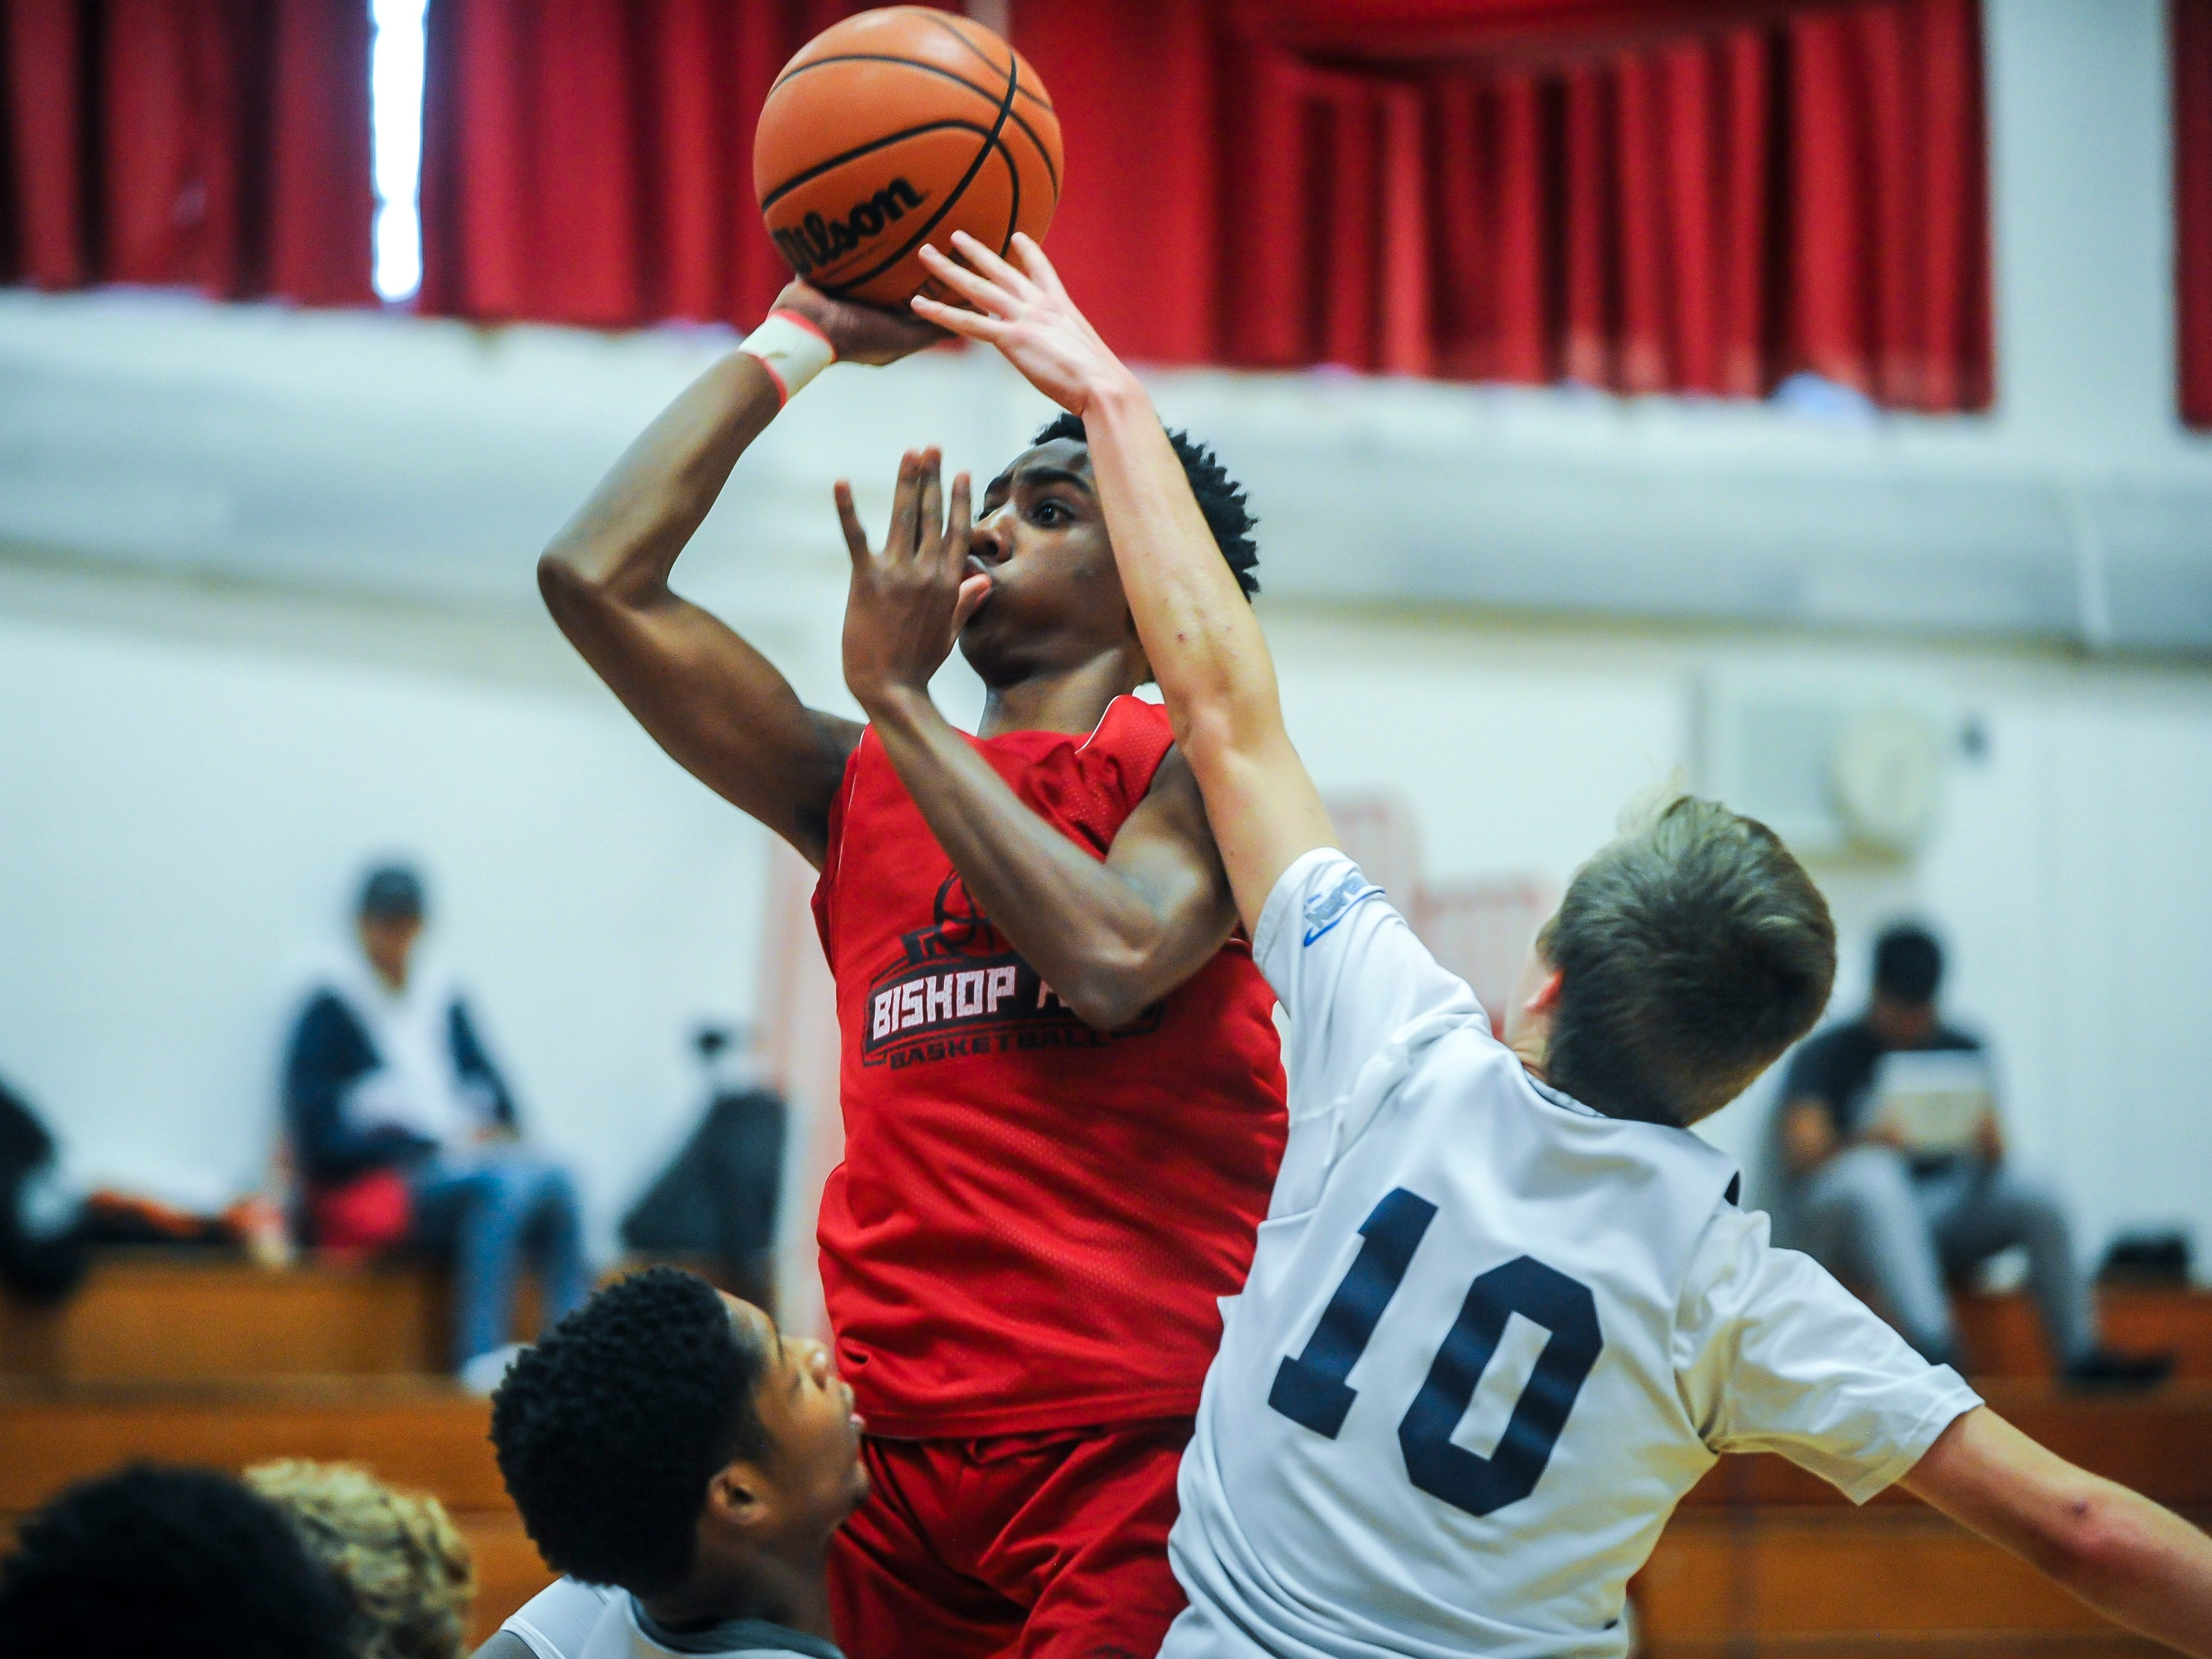 Bishop Ahr's Quadry Adams soars to the basket against Immaculata's Dan Johnson during a scrimmage on Saturday, Dec. 8, 2018 in Edison.